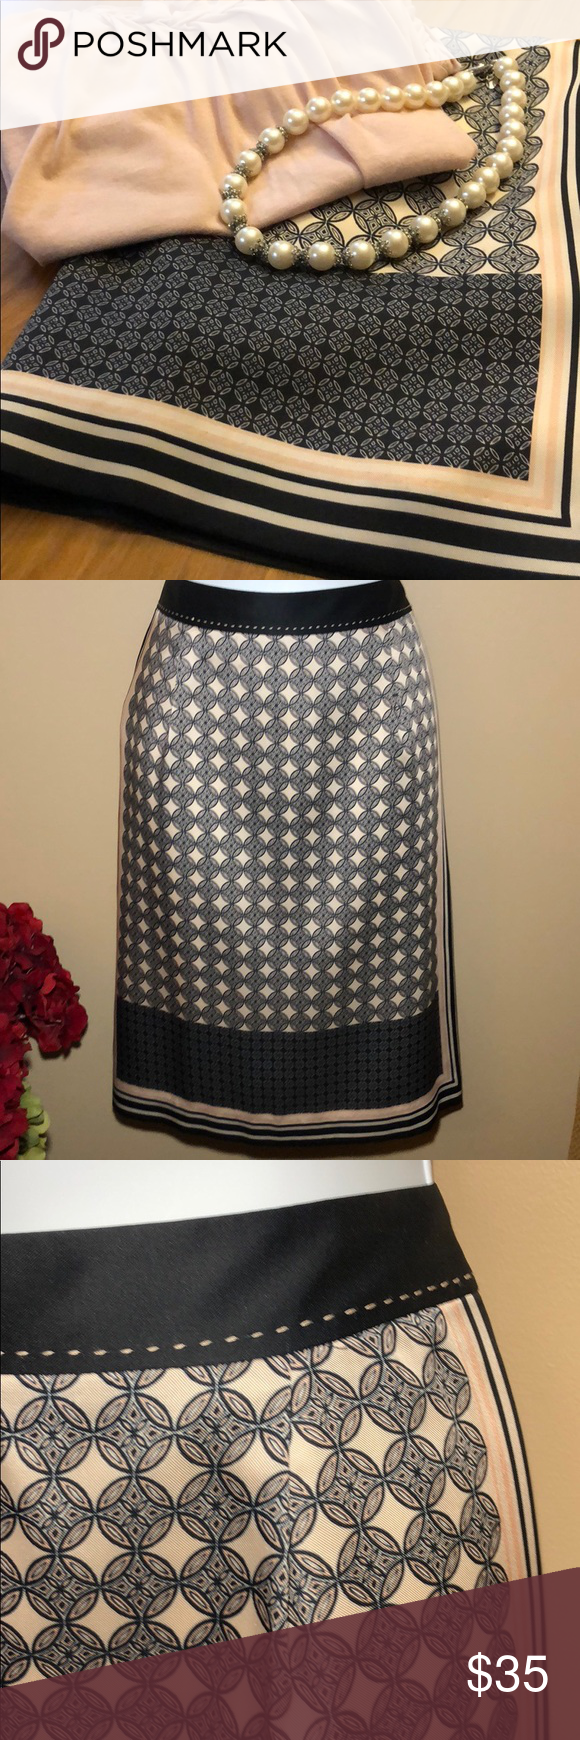 """ANN TAYLOR Mediterranean Style Skirt ANN TAYLOR NWOT Beautifully patterned skirt with blush threading over navy waistband. Pattern reminds me of a Mediterranean tile or tapestry.  Flowy/Lined.  Slit/Zipper in back.    Navy, cream, blush.   Approx 31"""" waist (meas all the way around w fabric tape).  Just over 15"""" across. 23"""" long @side. Smoke-free home.   TINY blue dot on the edge of the navy/cream line at bottom side of skirt...ink run? Only noticed while taking pics. See 2nd pic. I don't think anyone would notice it but me!"""